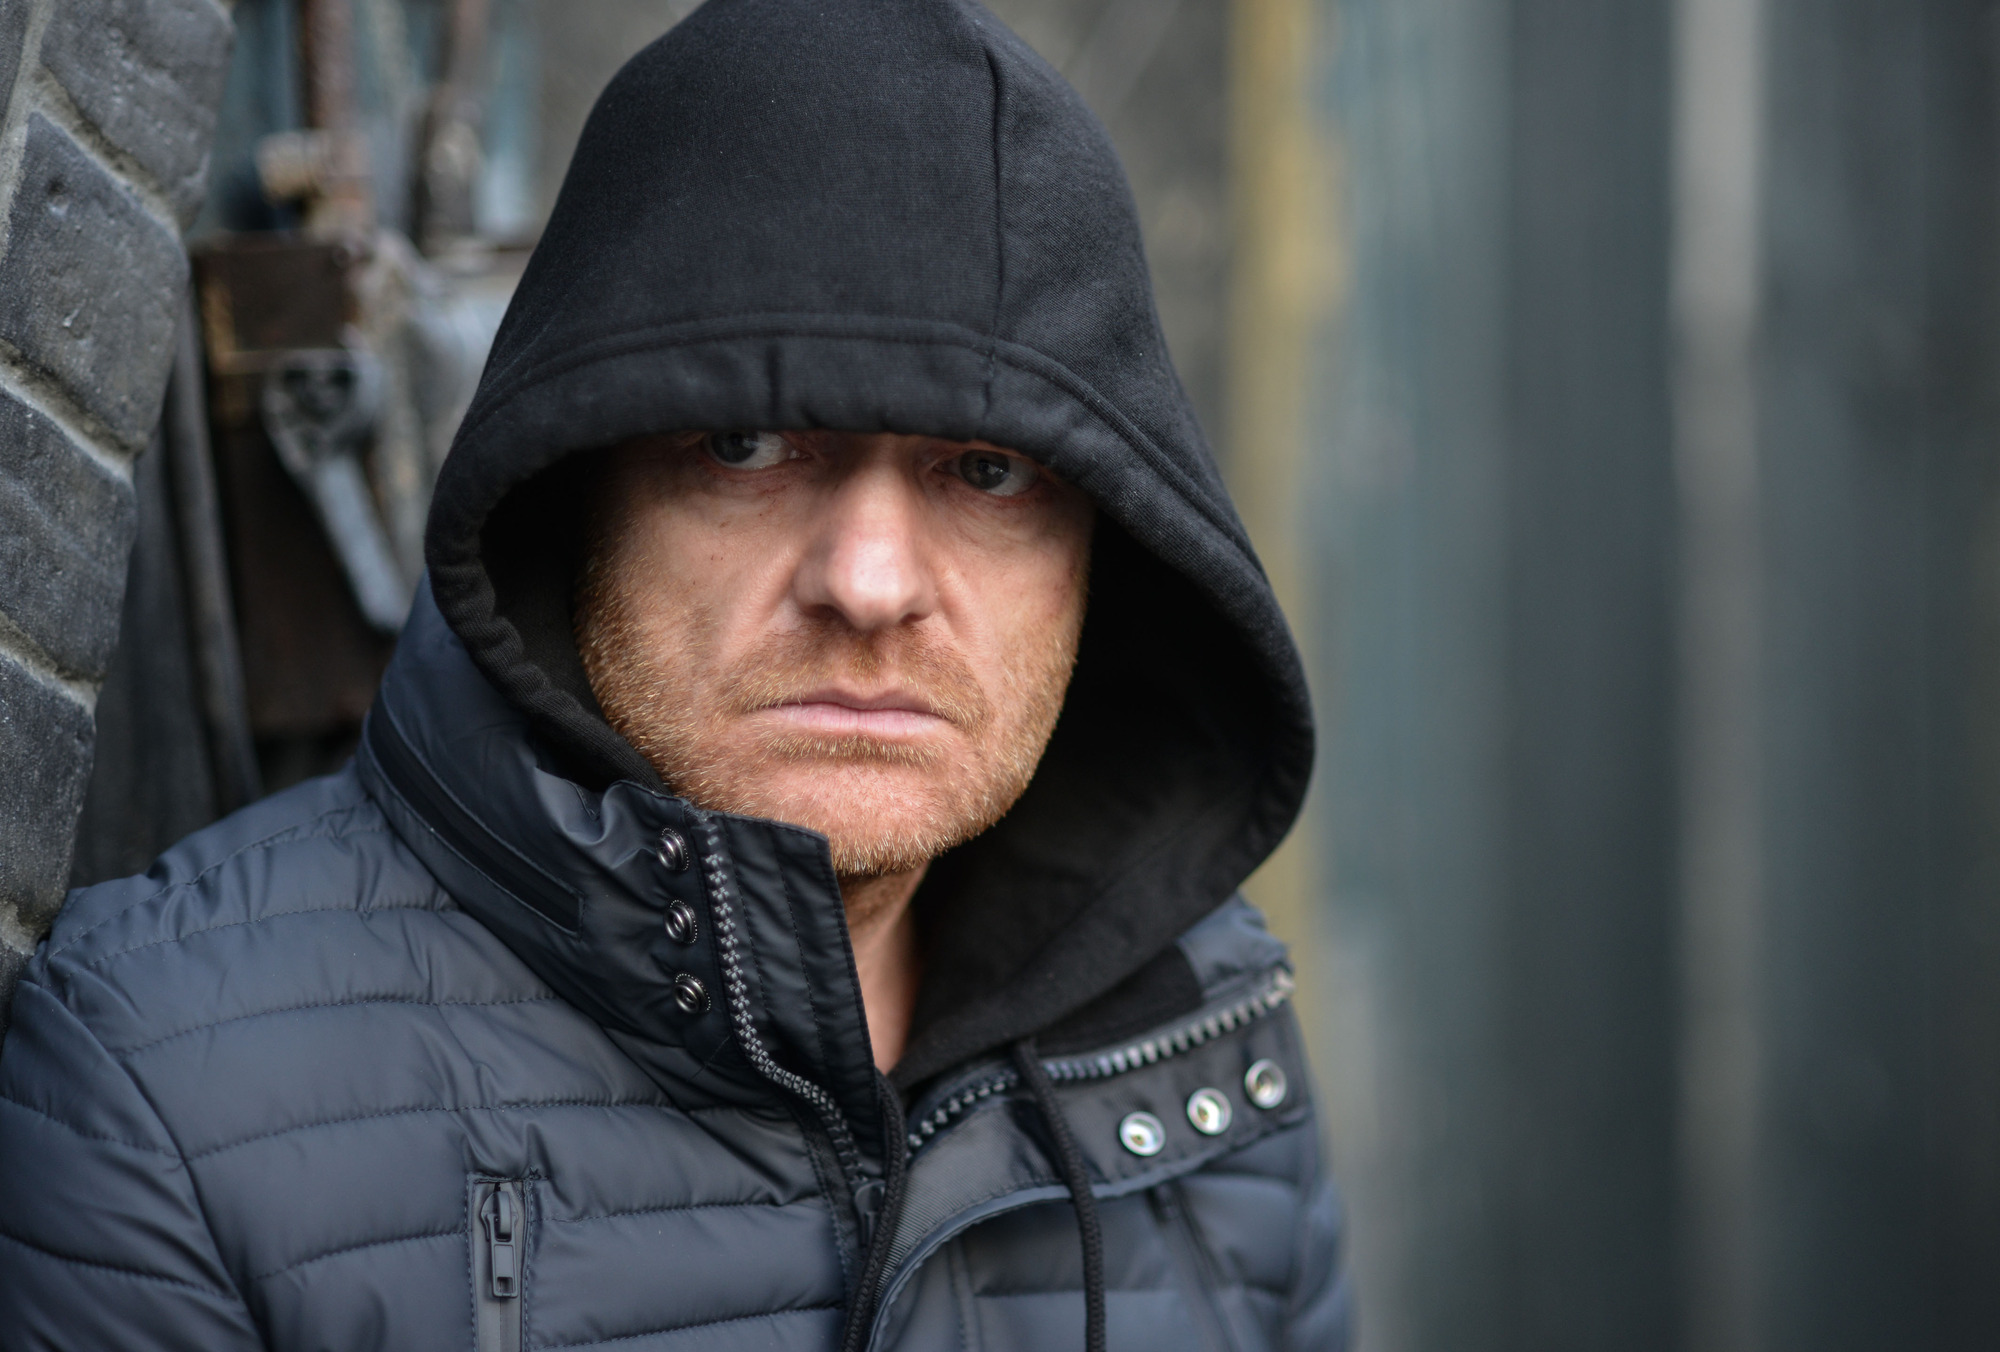 EastEnders spoilers: Jake Wood reveals details as Max Branning prepares to kill Ian Beale